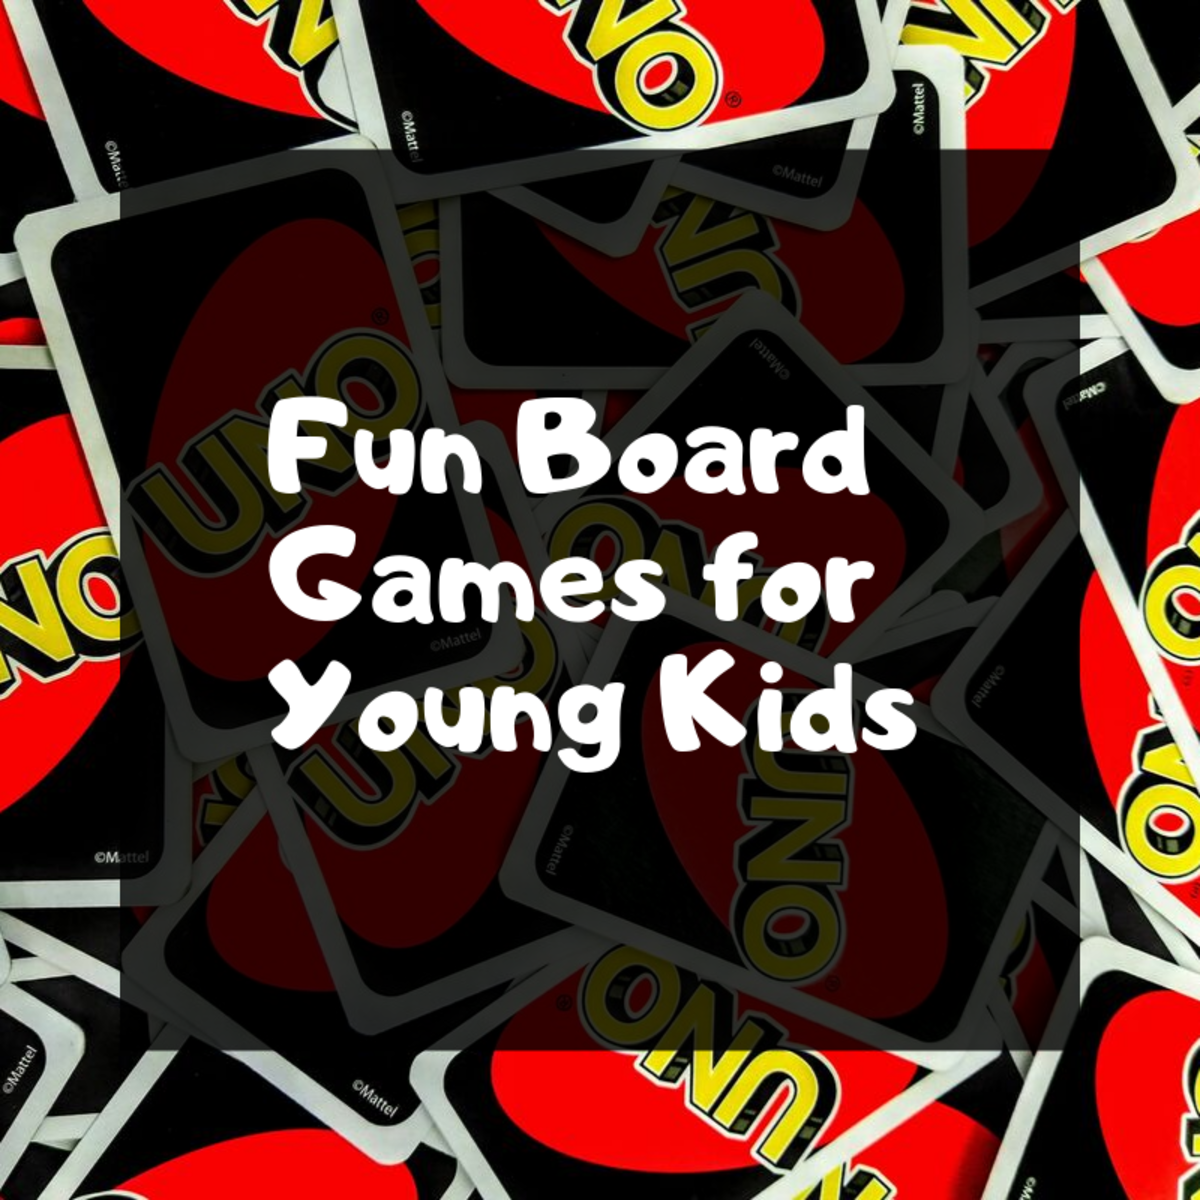 A good board game can bring so much fun to your kids during the Christmas season. These games are sure to be popular with the whole family.